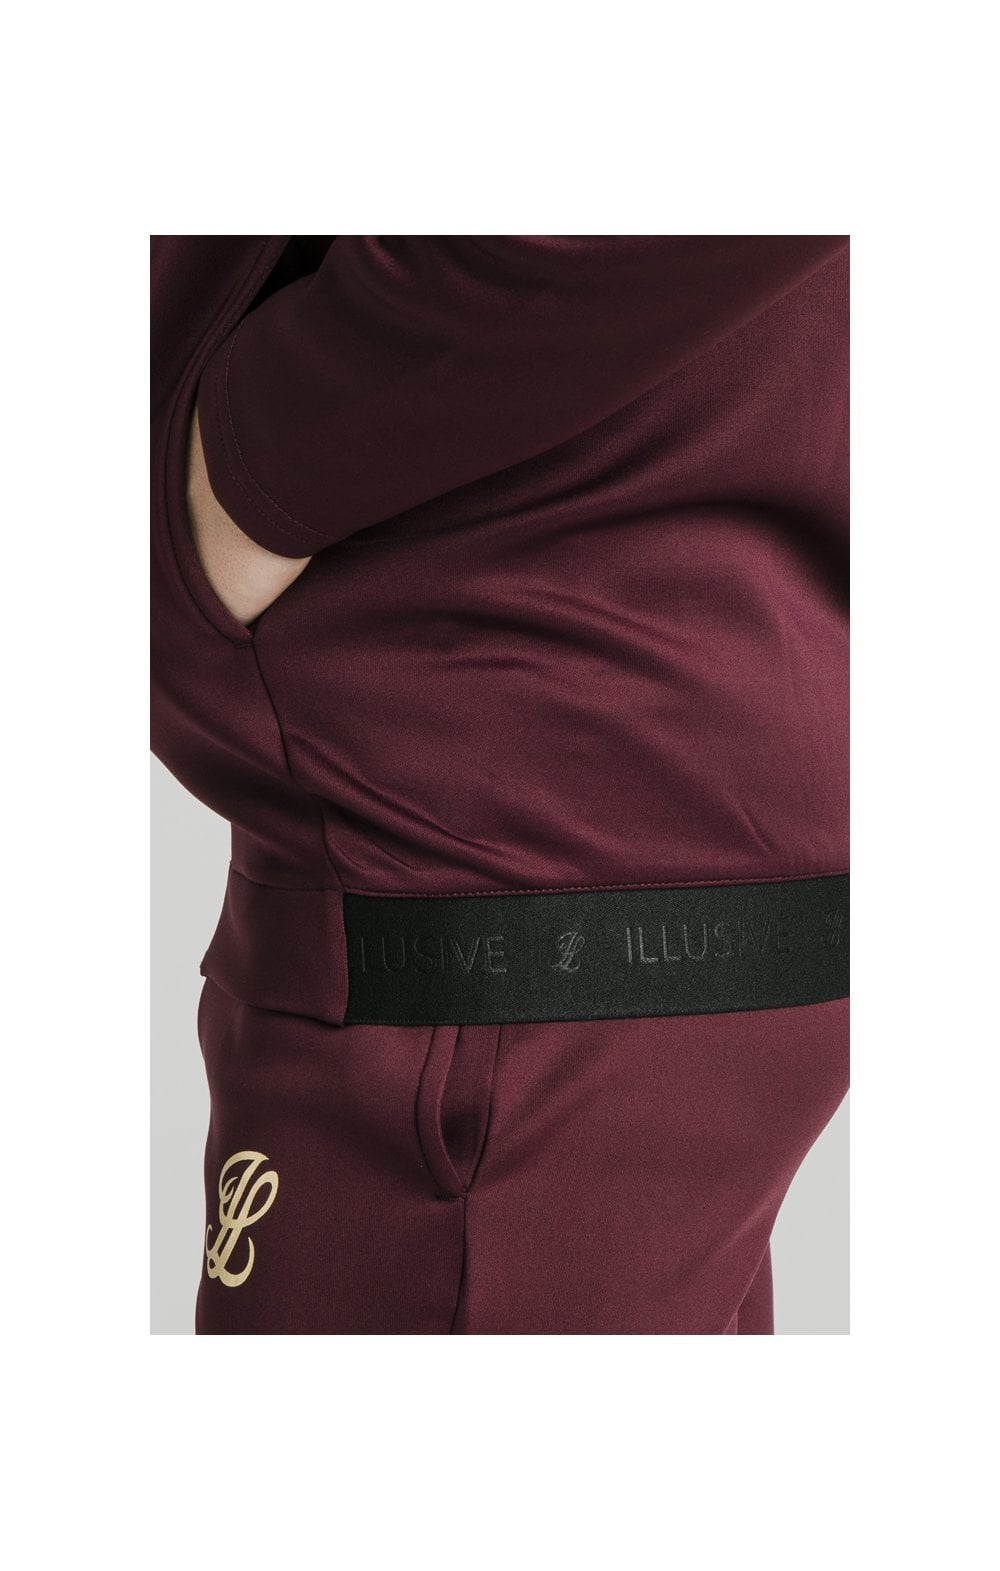 Load image into Gallery viewer, Illusive London Agility Zip Through Hoodie - Burgundy (1)